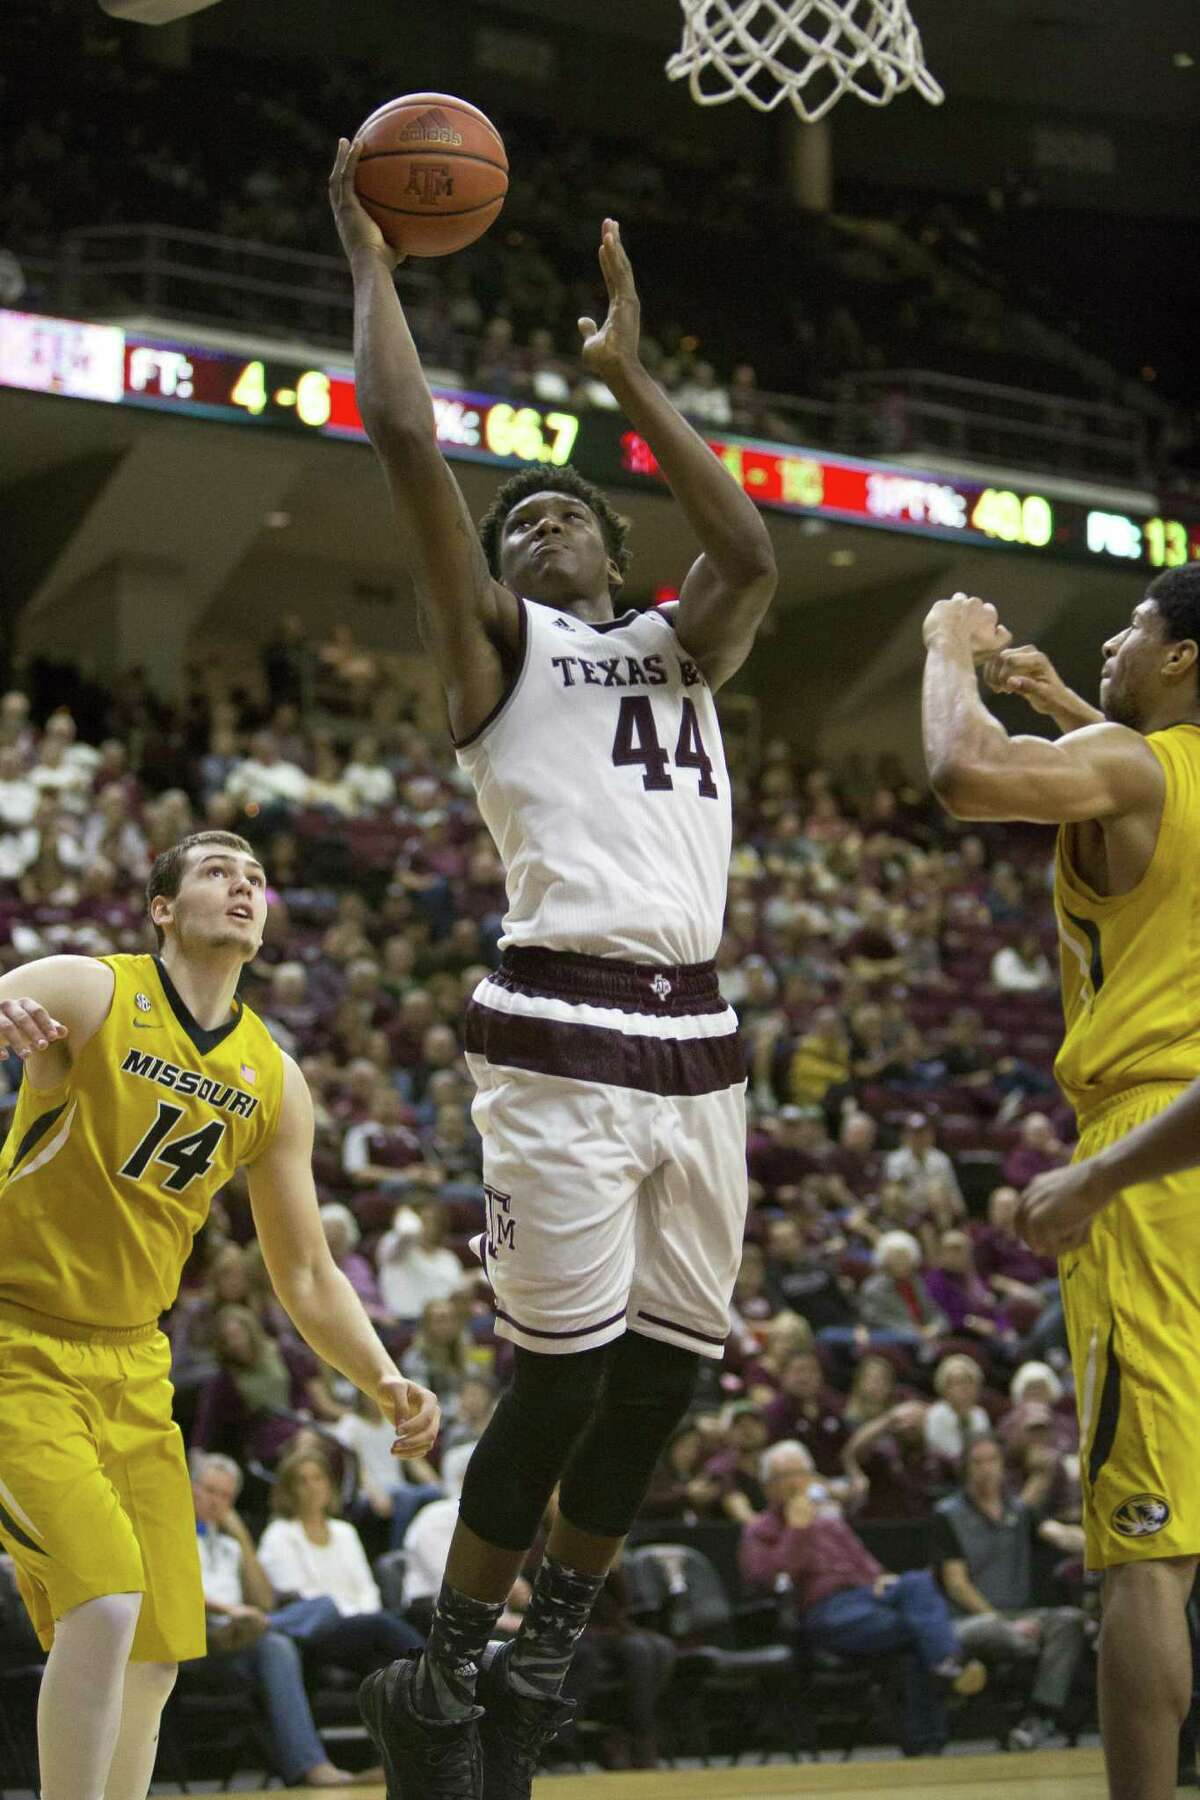 Texas A&M freshman forward Robert Williams (44) puts a shot up past Missouri defenders on Feb. 8, 2017, in College Station.